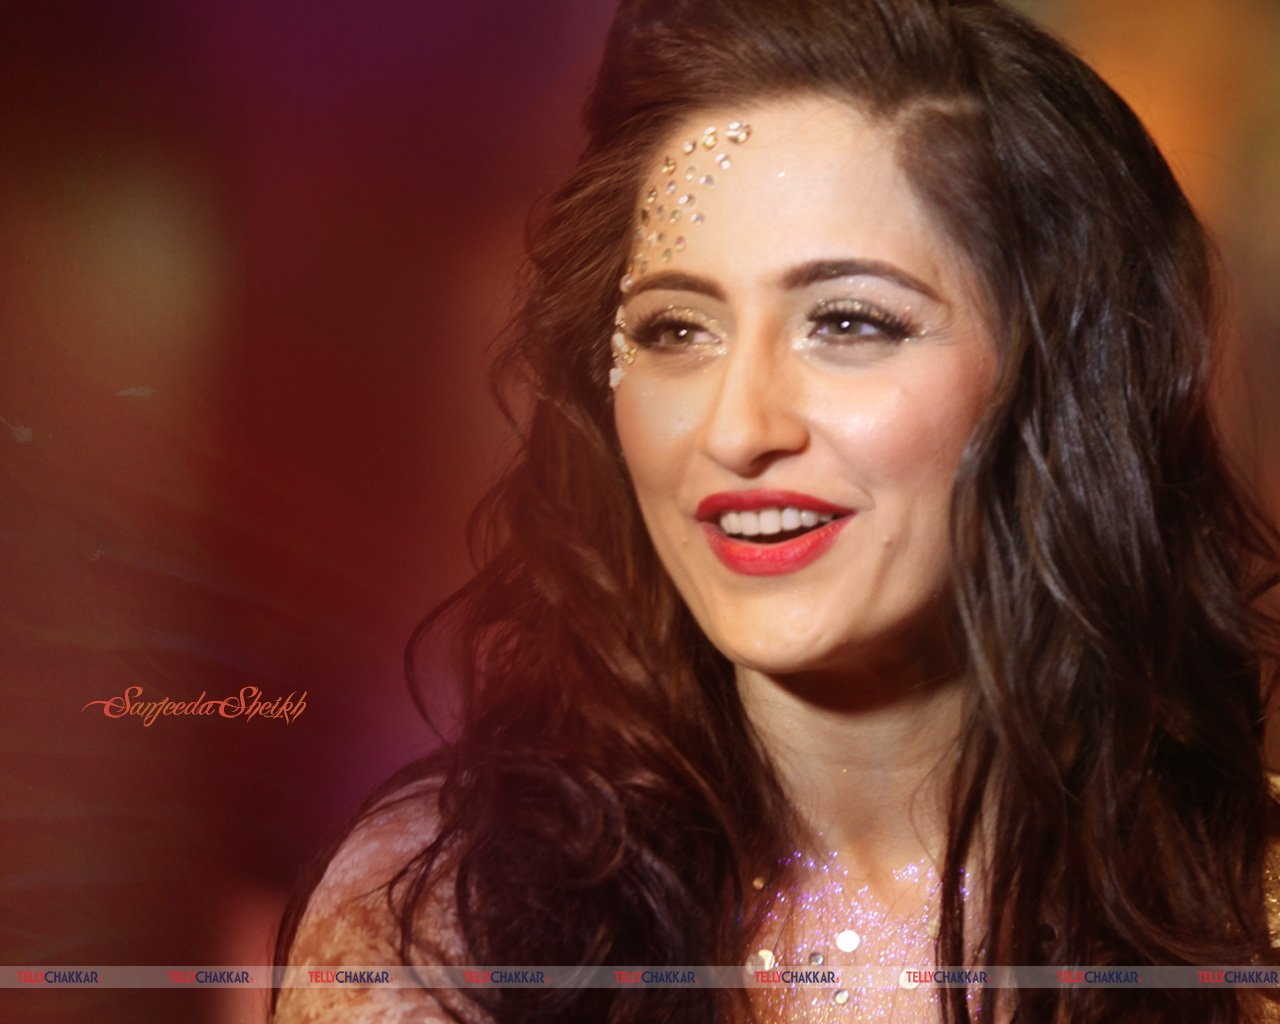 Discussion on this topic: Orfeh, sanjeeda-sheikh/